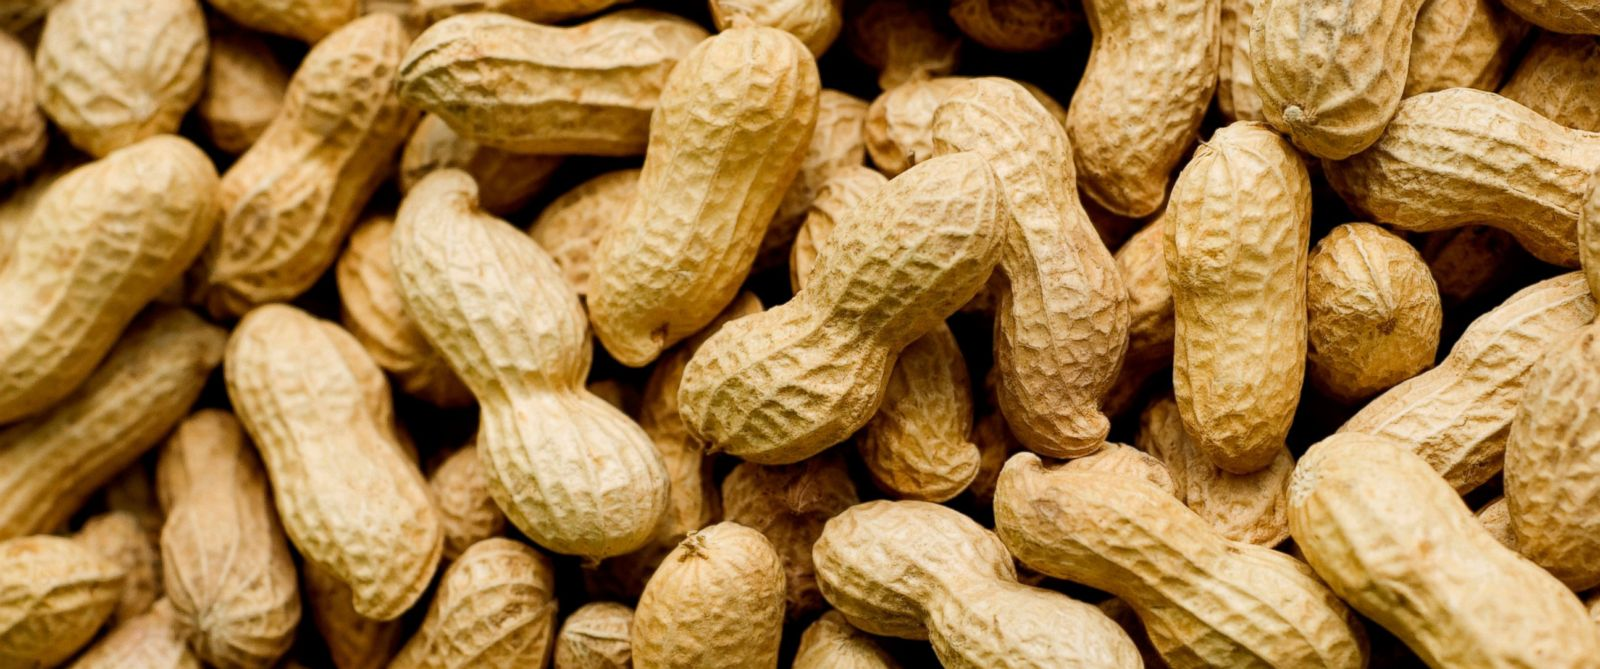 A study shows eating peanuts early on in life may help decrease the risk of developing peanut allergies.